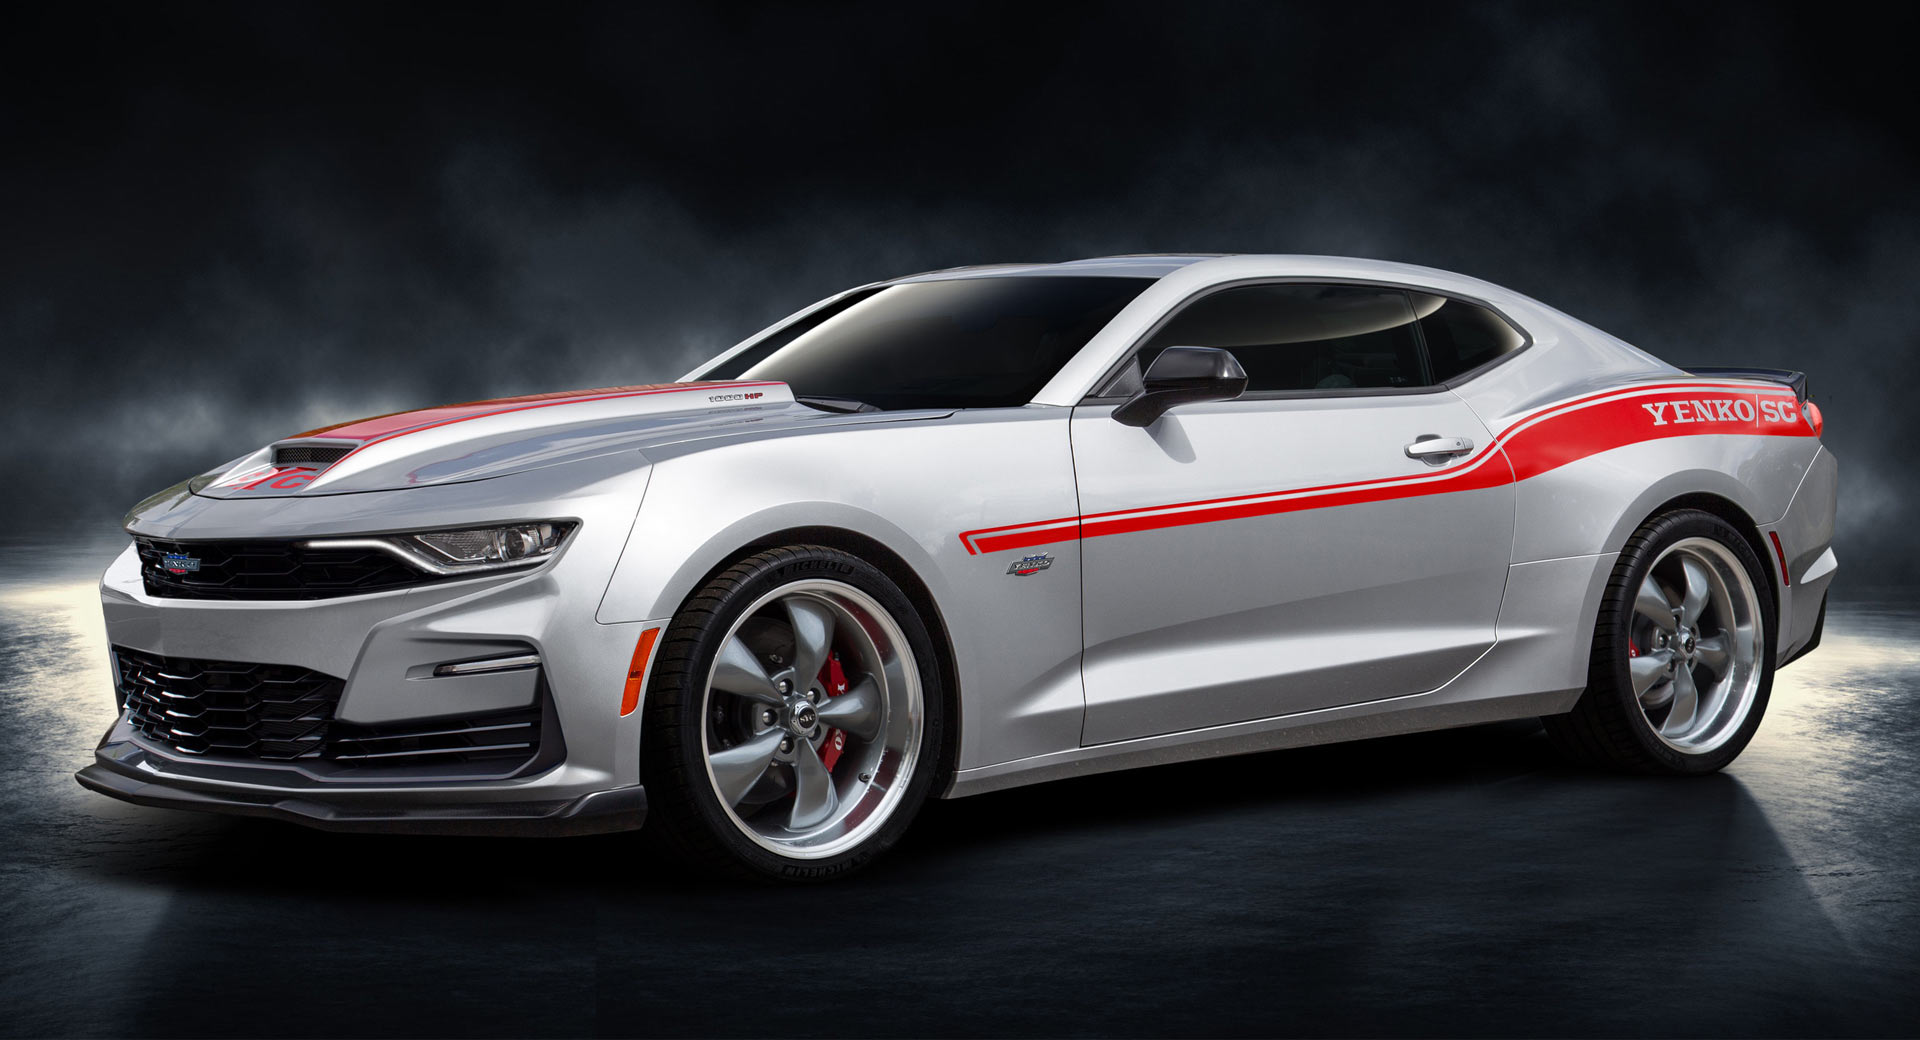 2020 Yenko/SC Camaro Combines 1,000 HP With A Six-Speed ...